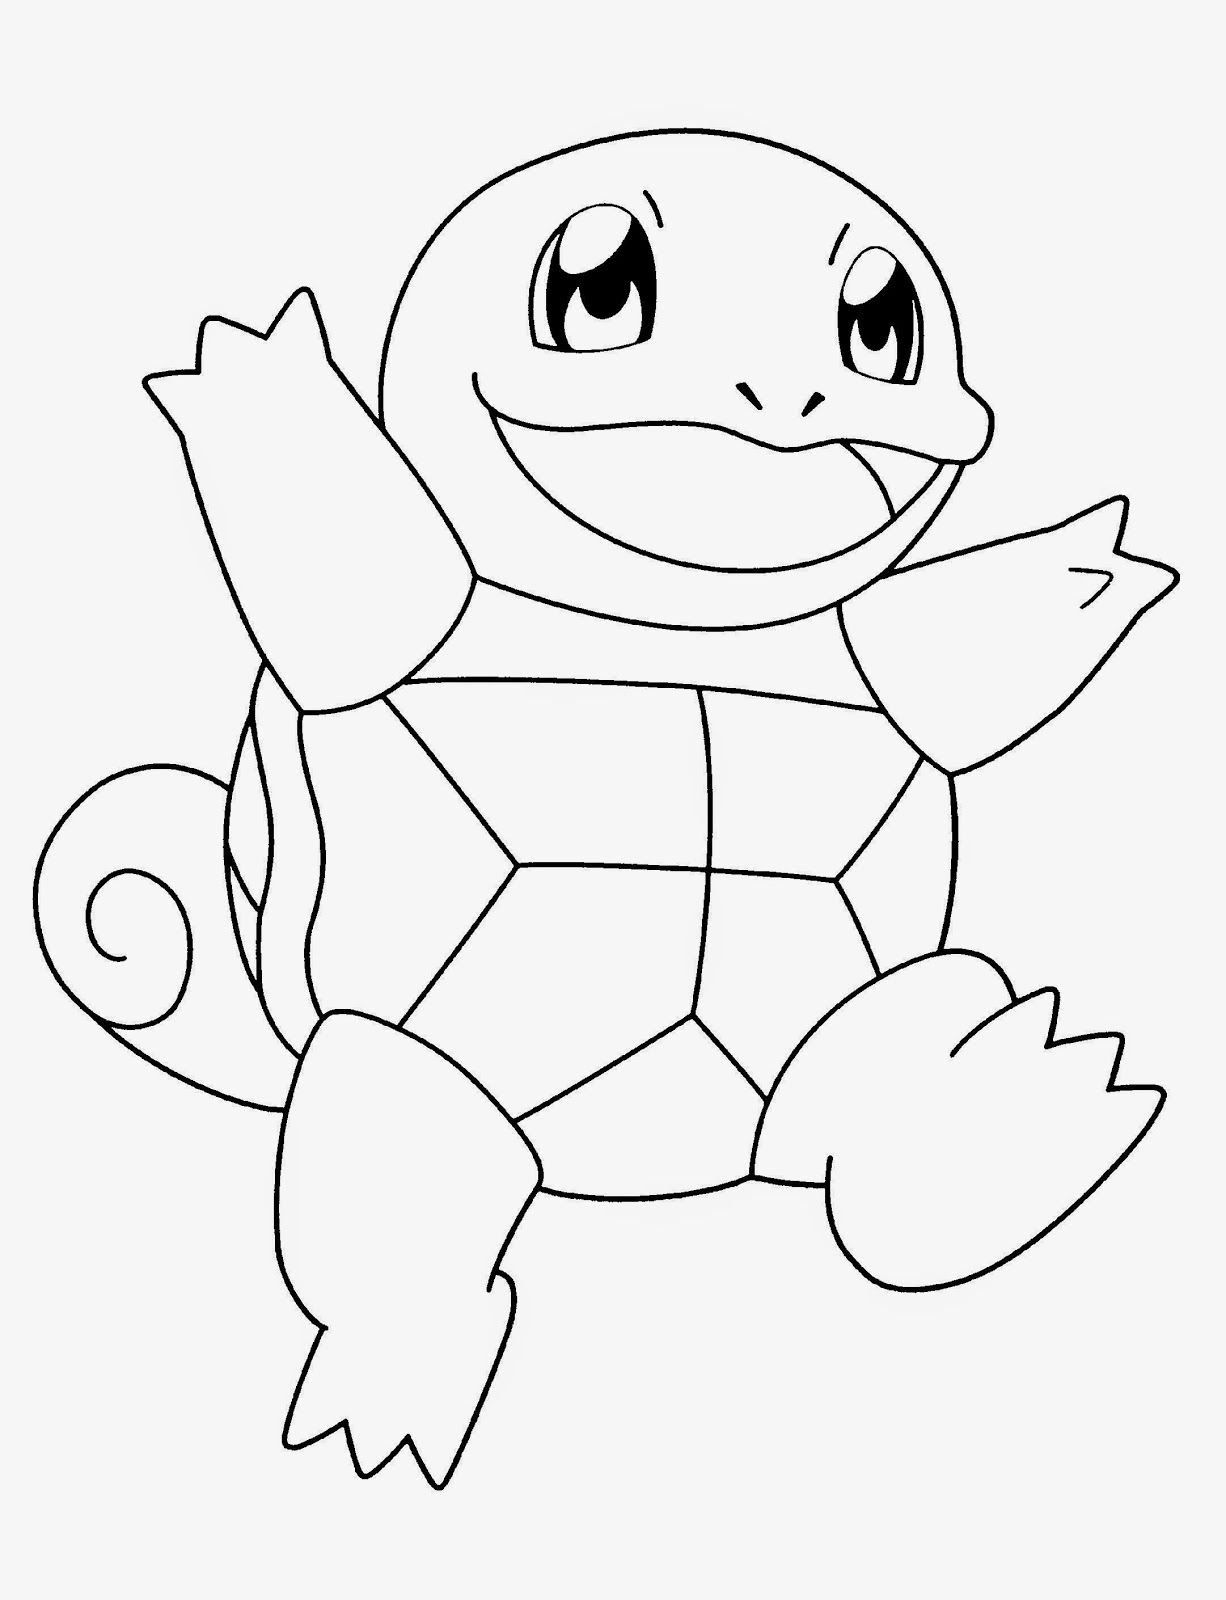 Colouring Pages Pokemon Black And White : Free Pokemon Coloring Pages Black And White Coloring Home